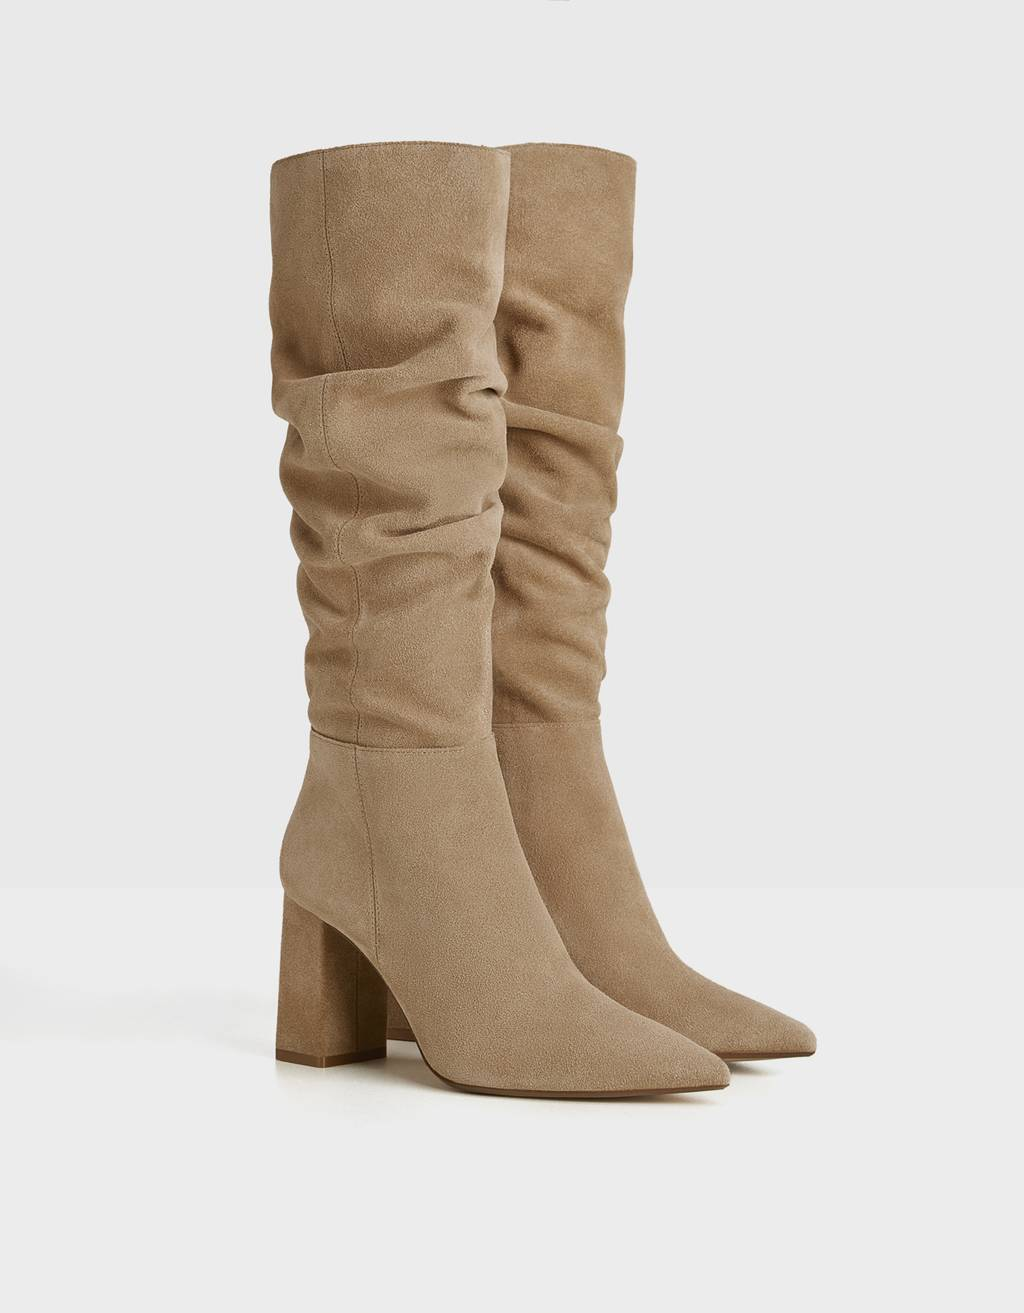 LEATHERJOIN LIFE LEATHER slouched boots